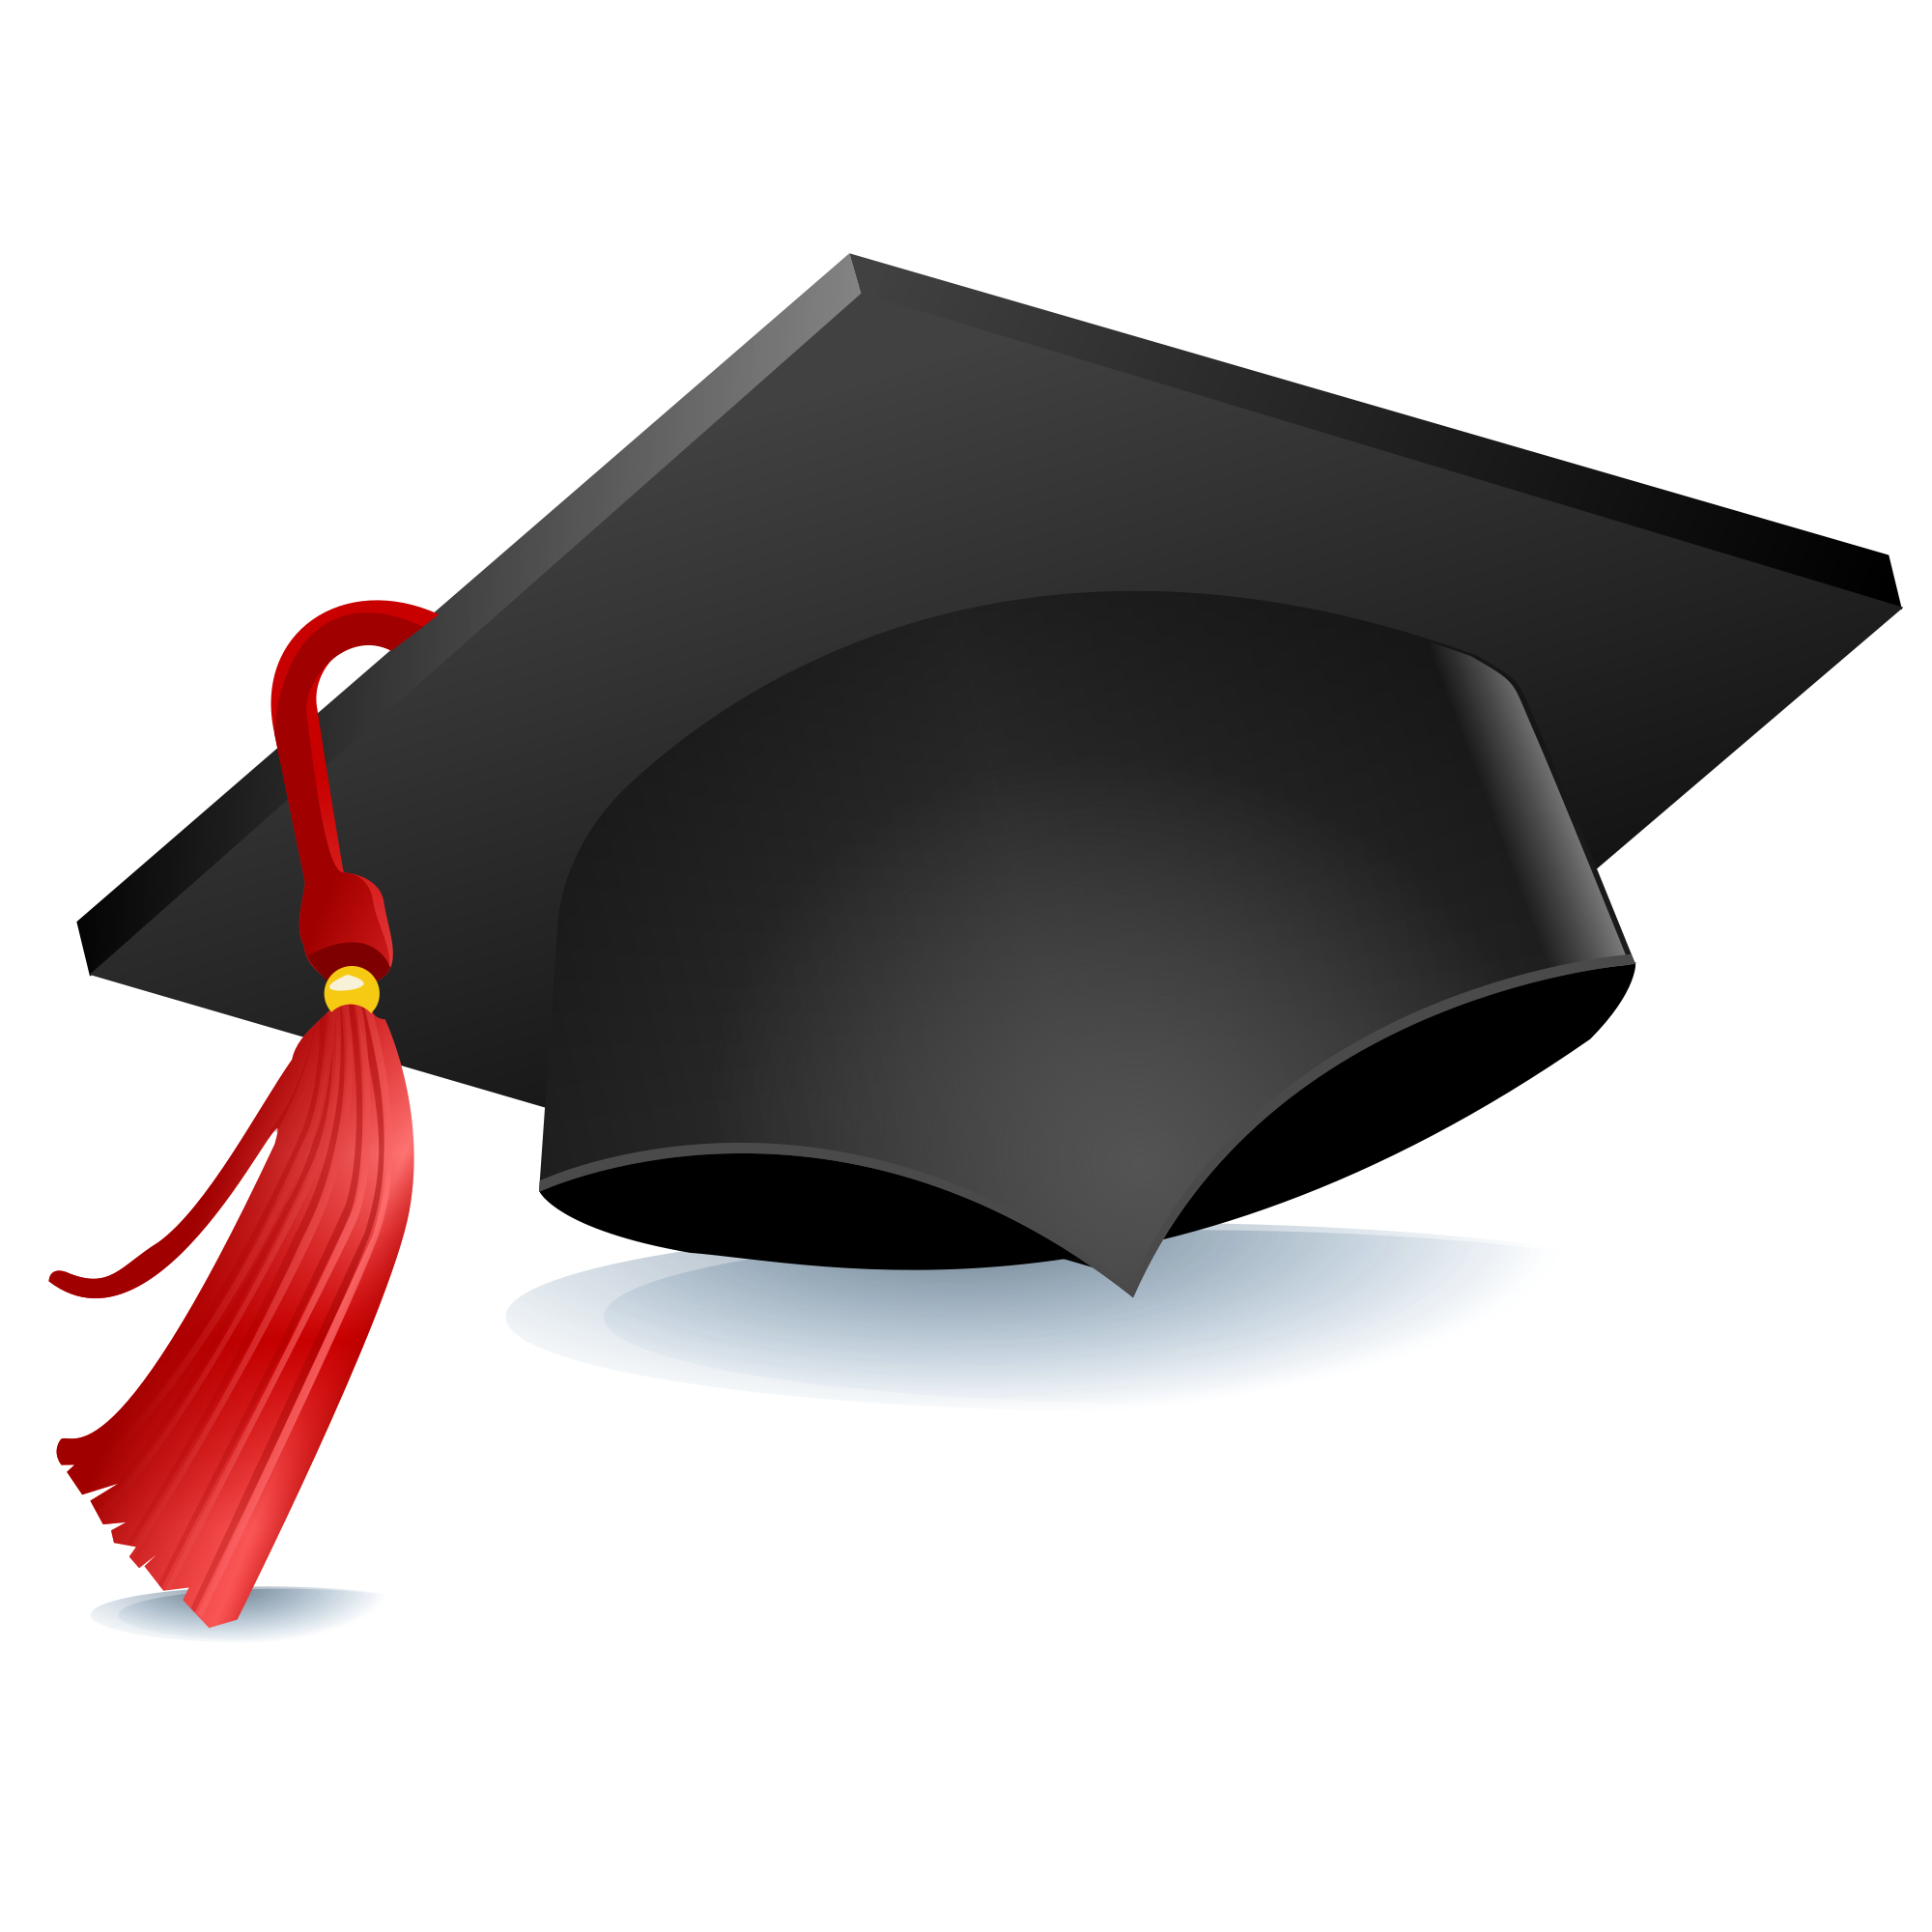 Graduation Cap Vector Png